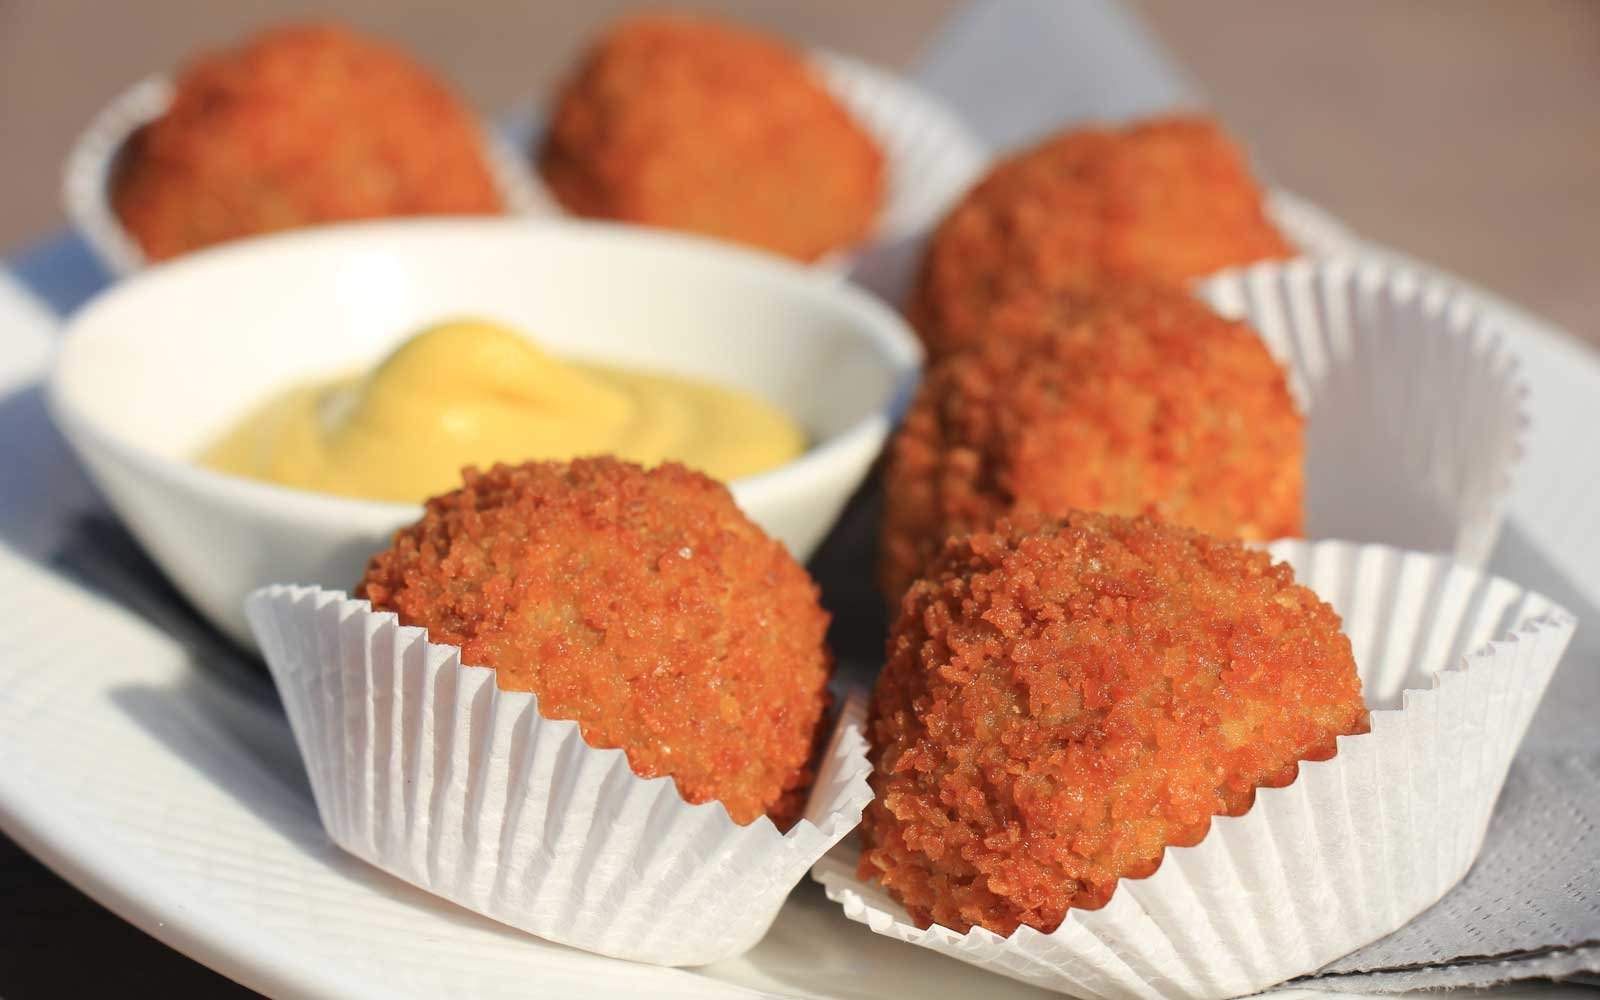 Bitterballen are a Dutch fried snack of stuffed and fried meatballs often served with mustard.